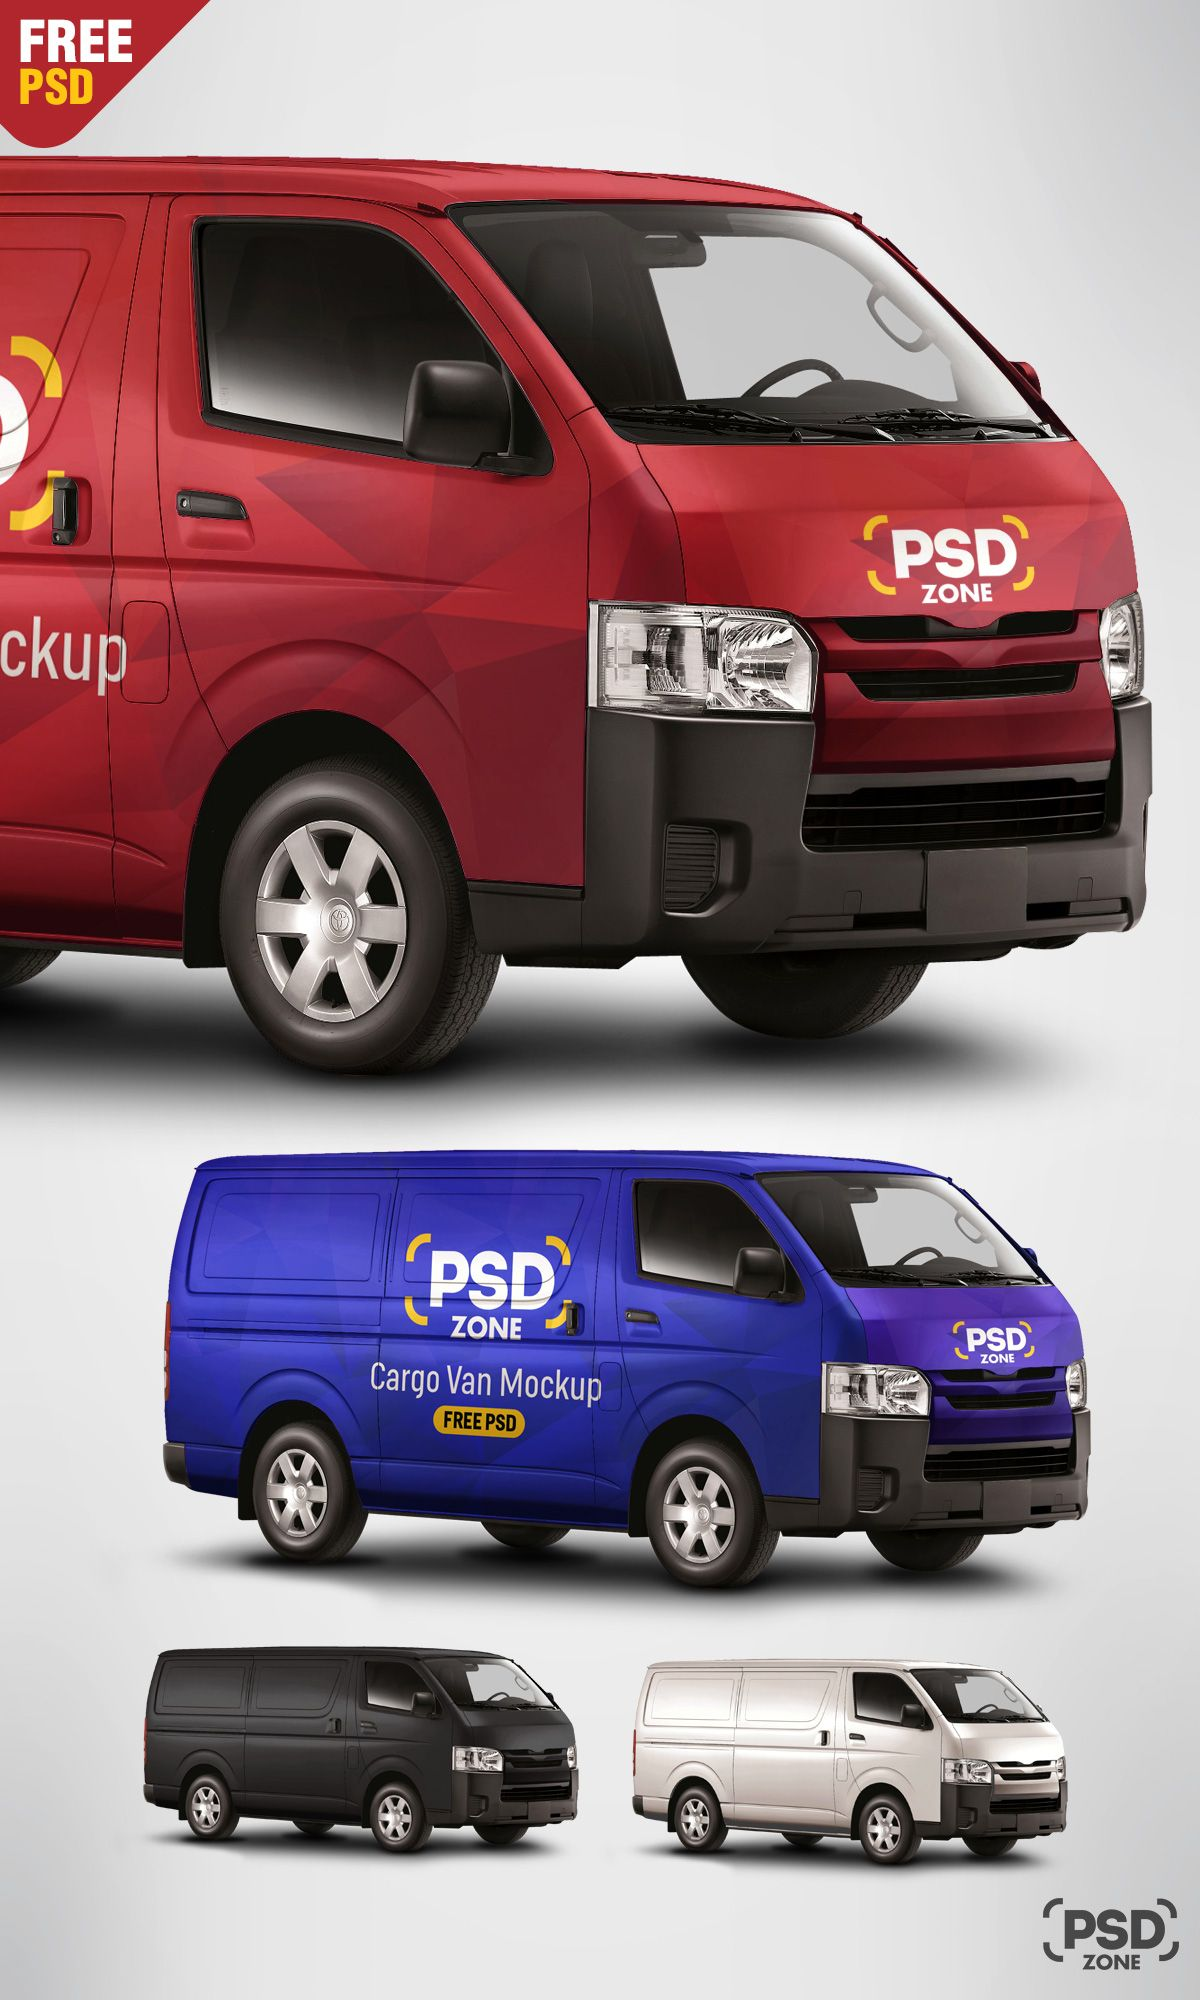 The Freebie Of Day Is Cargo Van Mockup Free PSD High Quality Comes With Resolution And Photorealistic Model Image